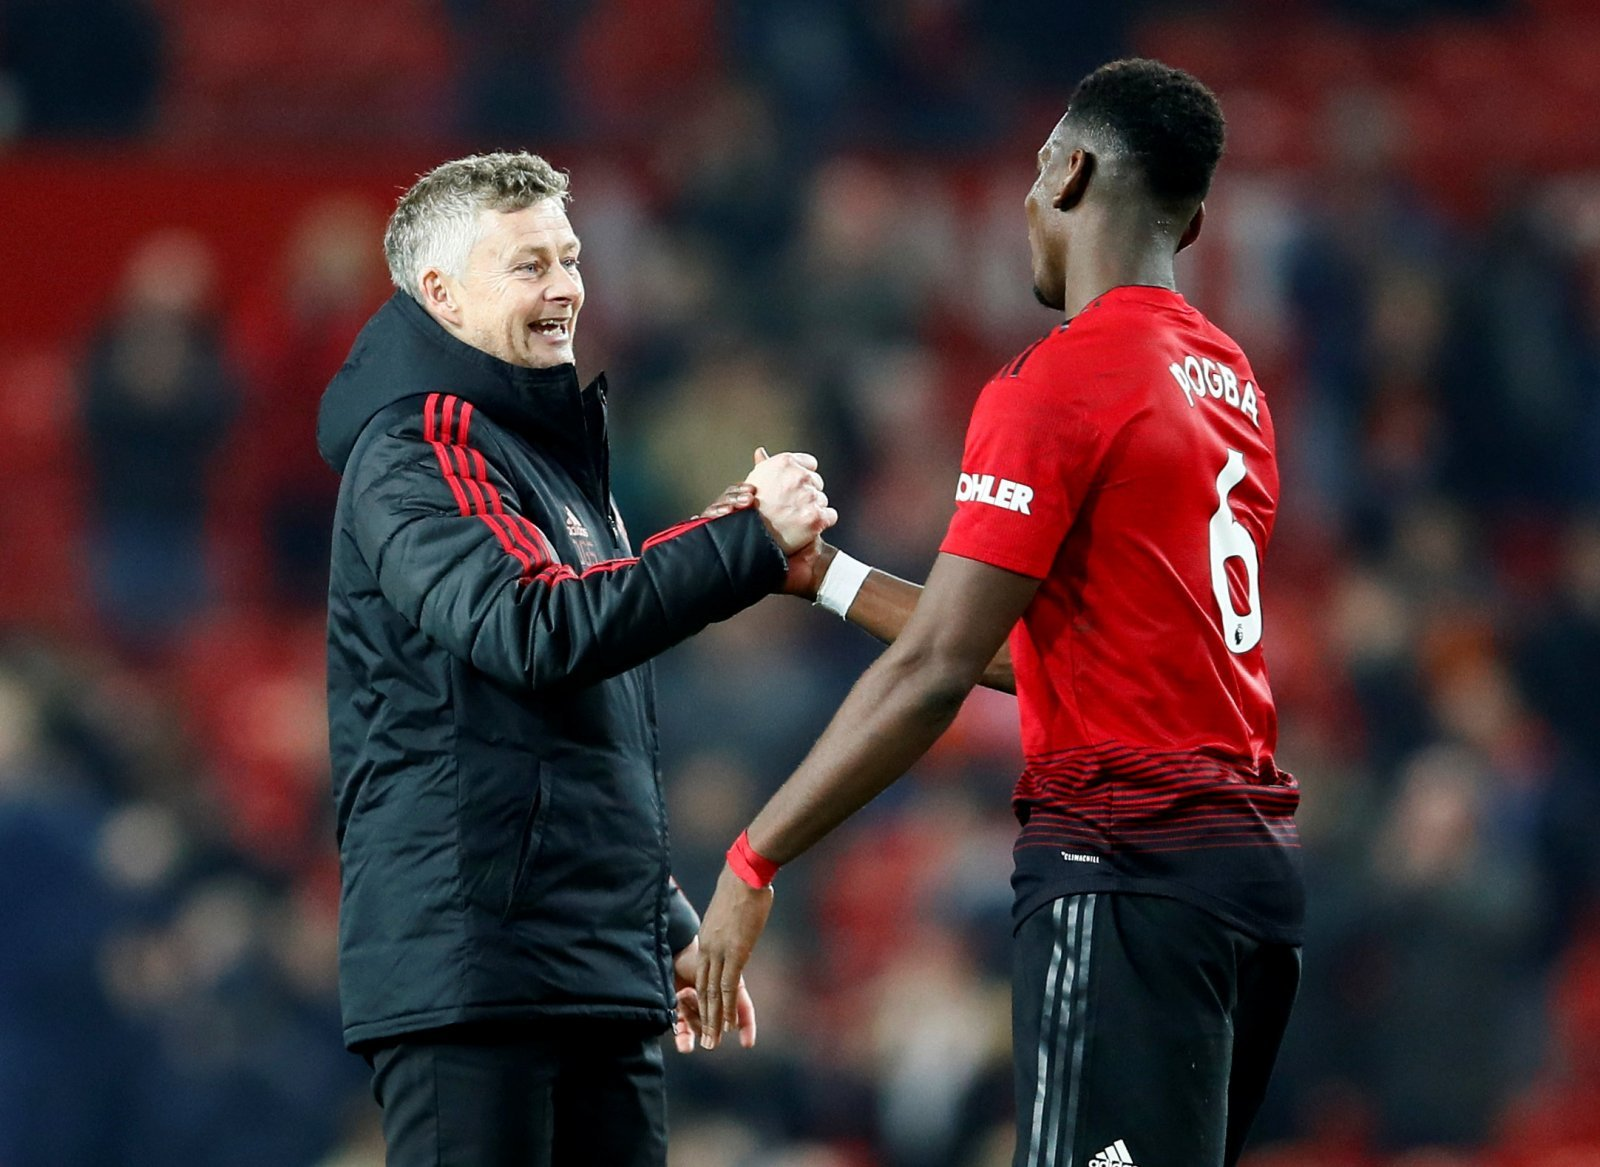 Look elsewhere: Just 30% of polled Man Utd fans would back a permanent contract for Ole Gunnar Solskjaer